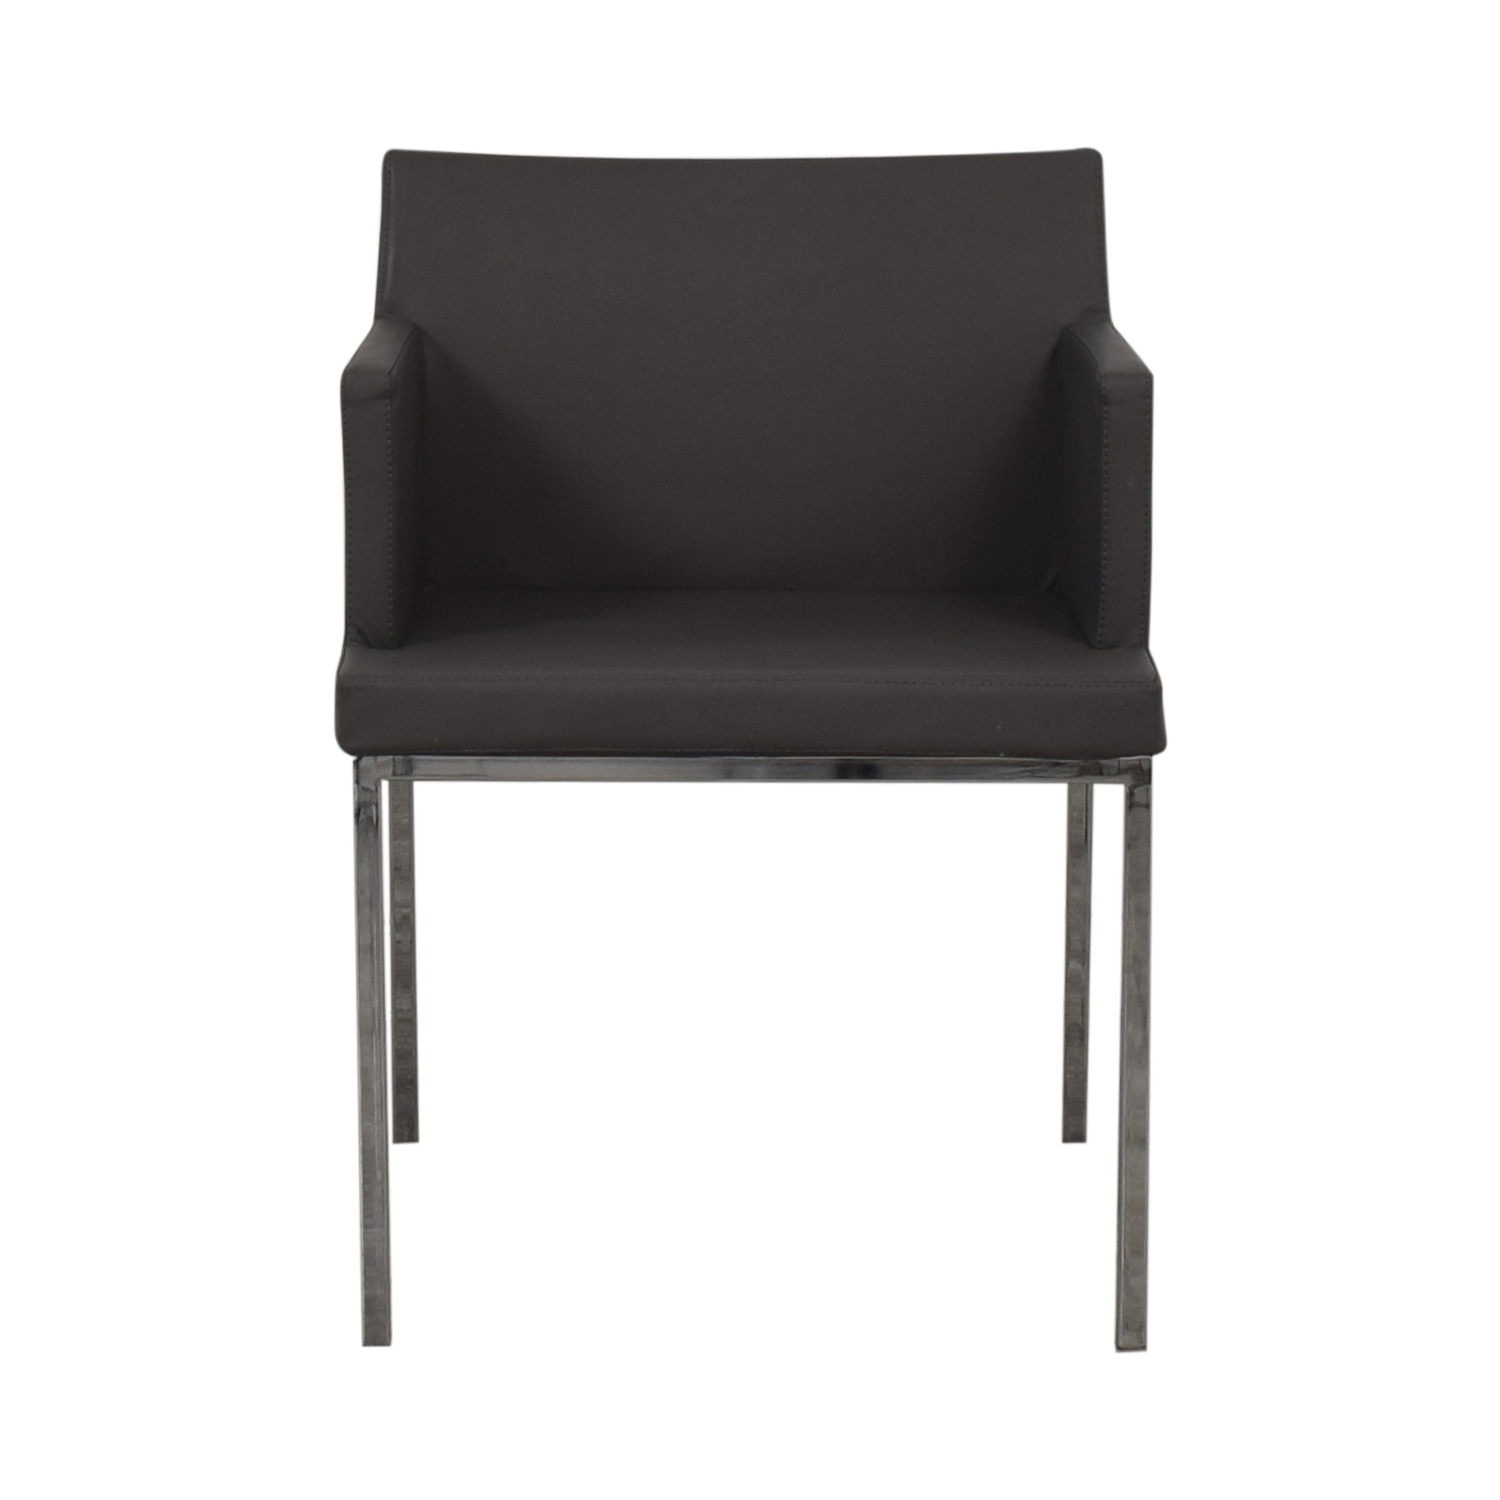 shop Lazzoni Lazzoni Leather Chrome Chair online